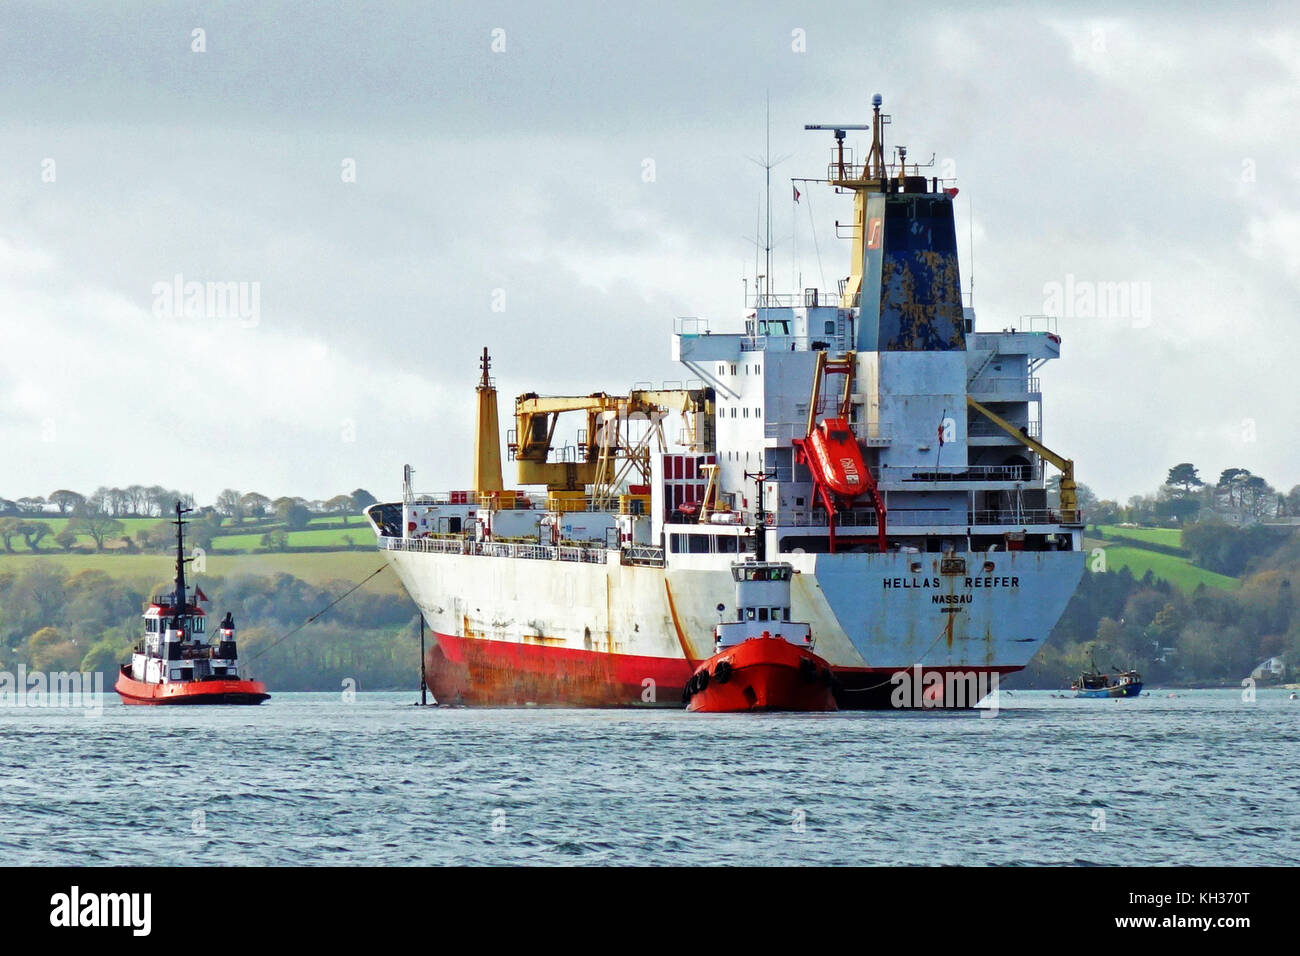 cargo ship in the river fal, cornwall, uk - Stock Image